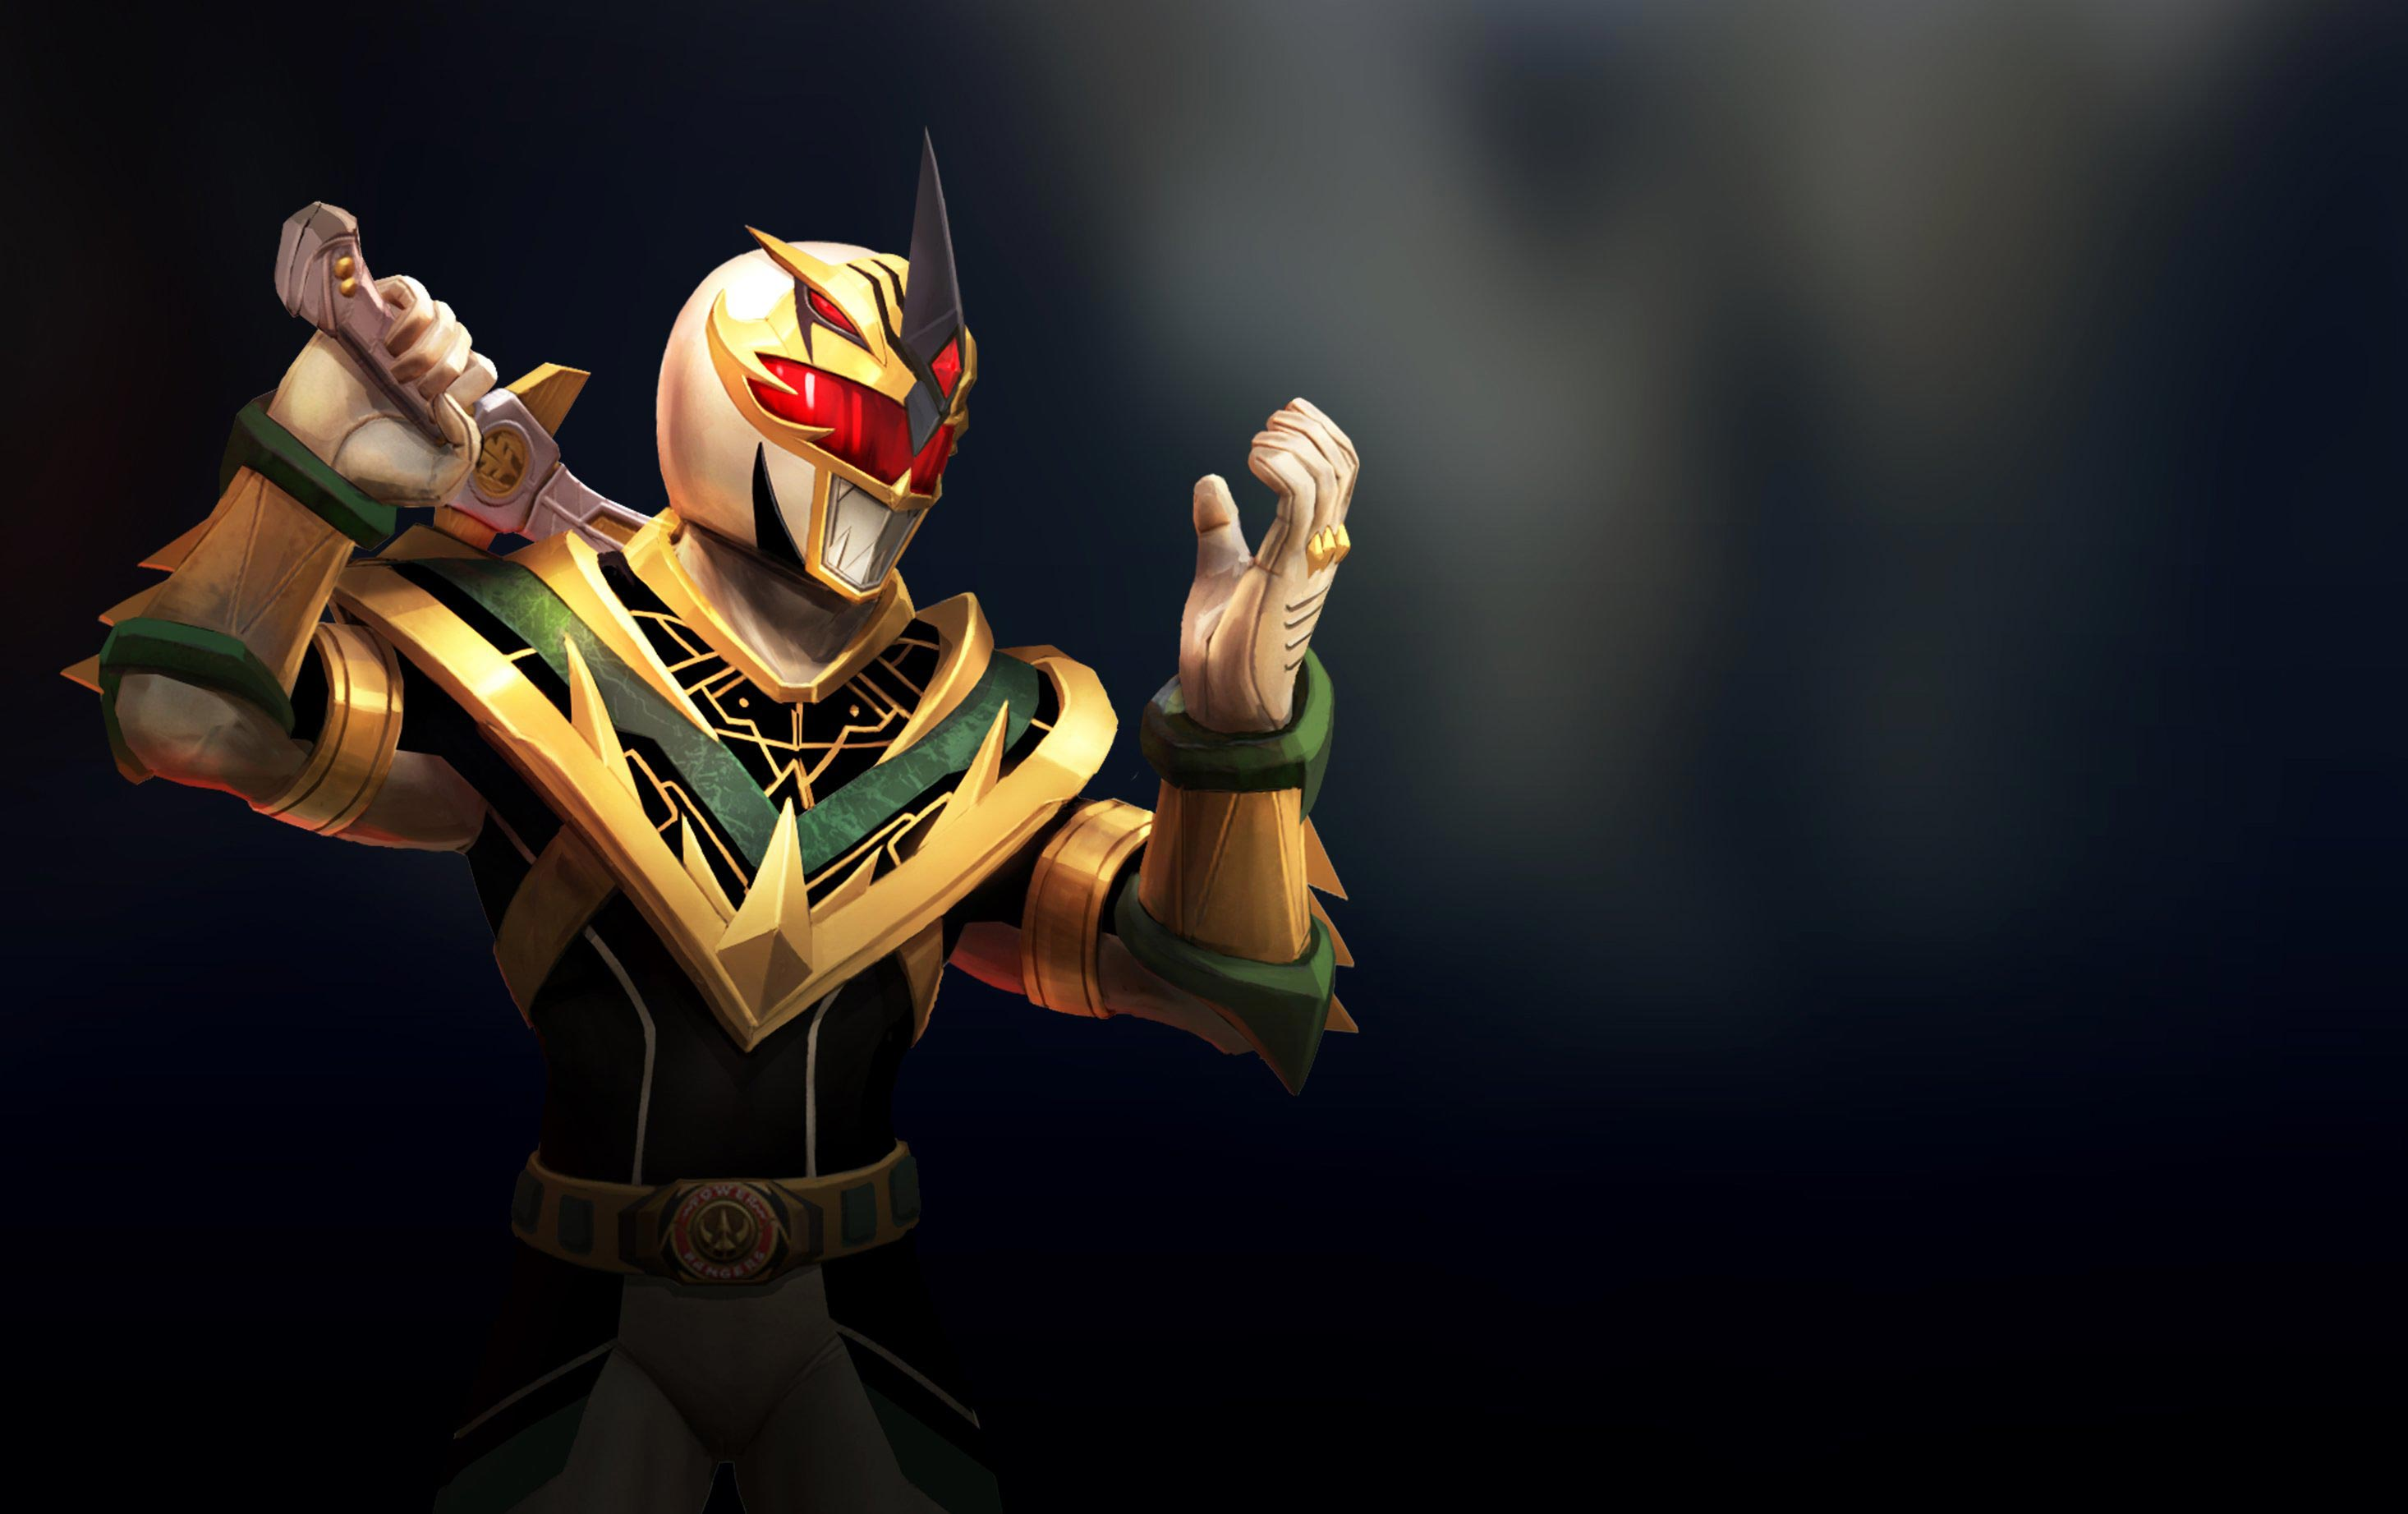 Power Rangers Battle for the Grid official screens 6 out of 6 image gallery